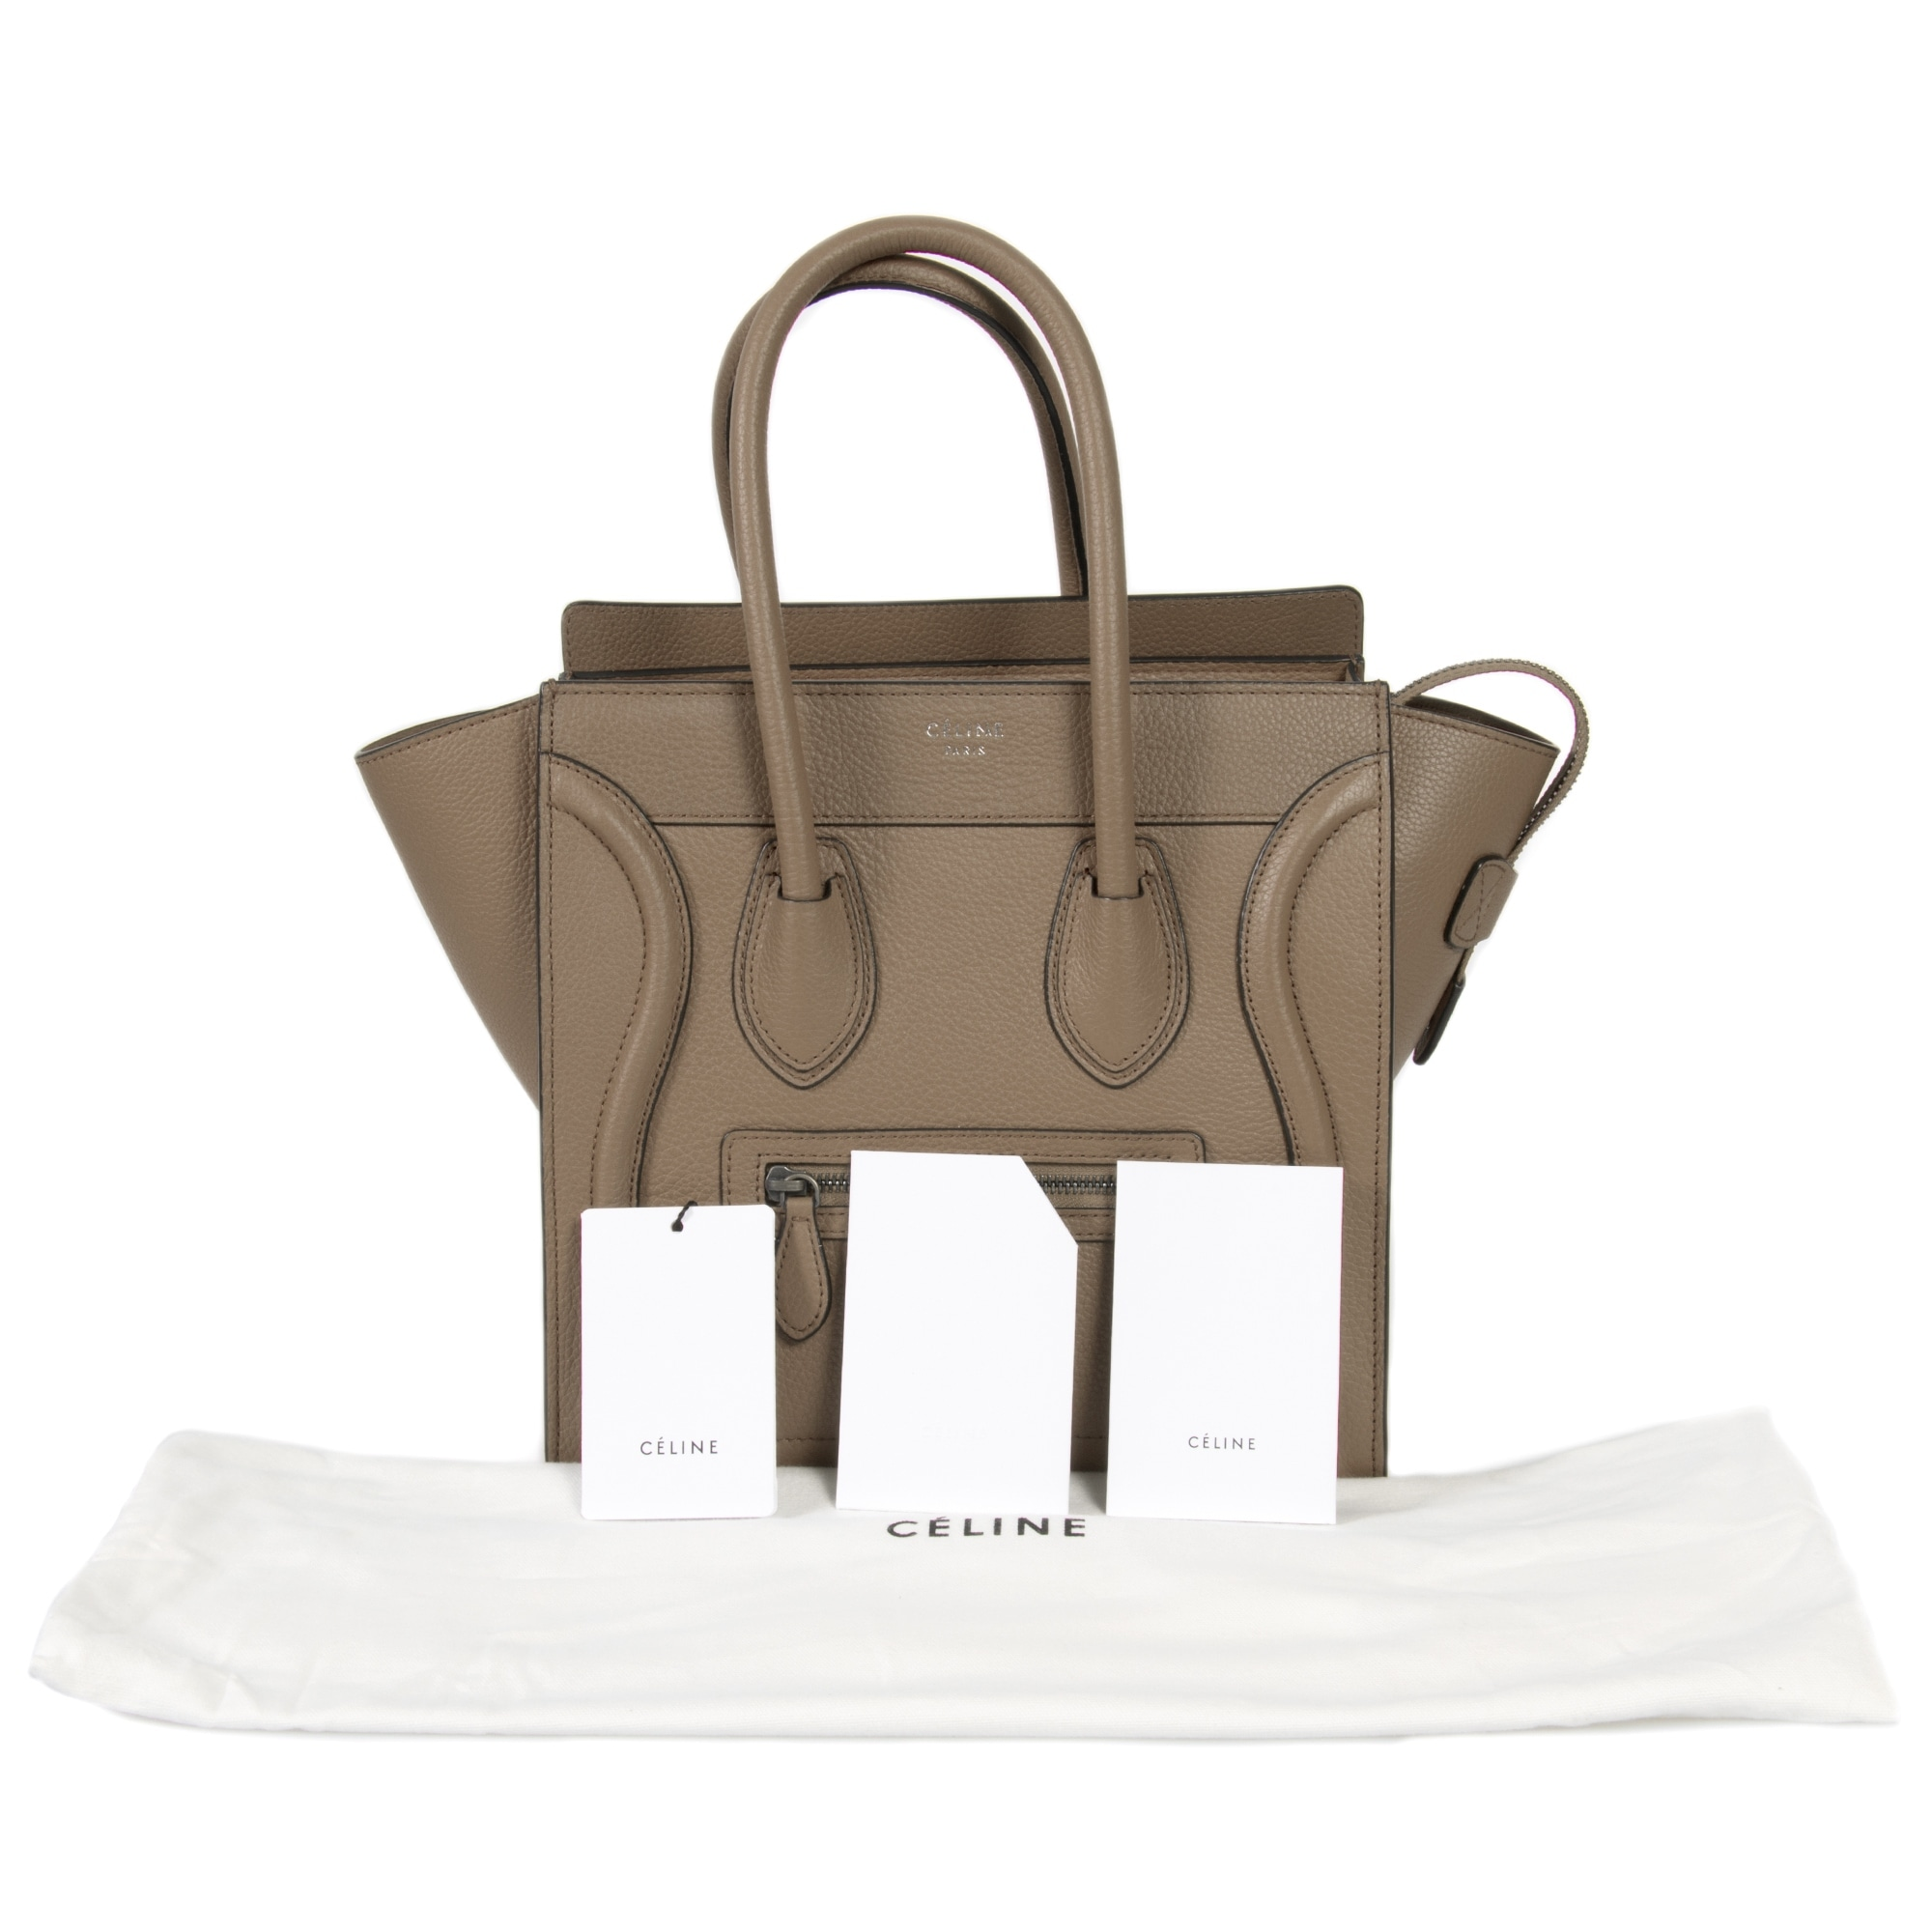 Shop Celine Micro Luggage Tote Bag in Dune Baby Drummed Calfskin Leather -  Free Shipping Today - Overstock.com - 23085449 d4f940f5f9a